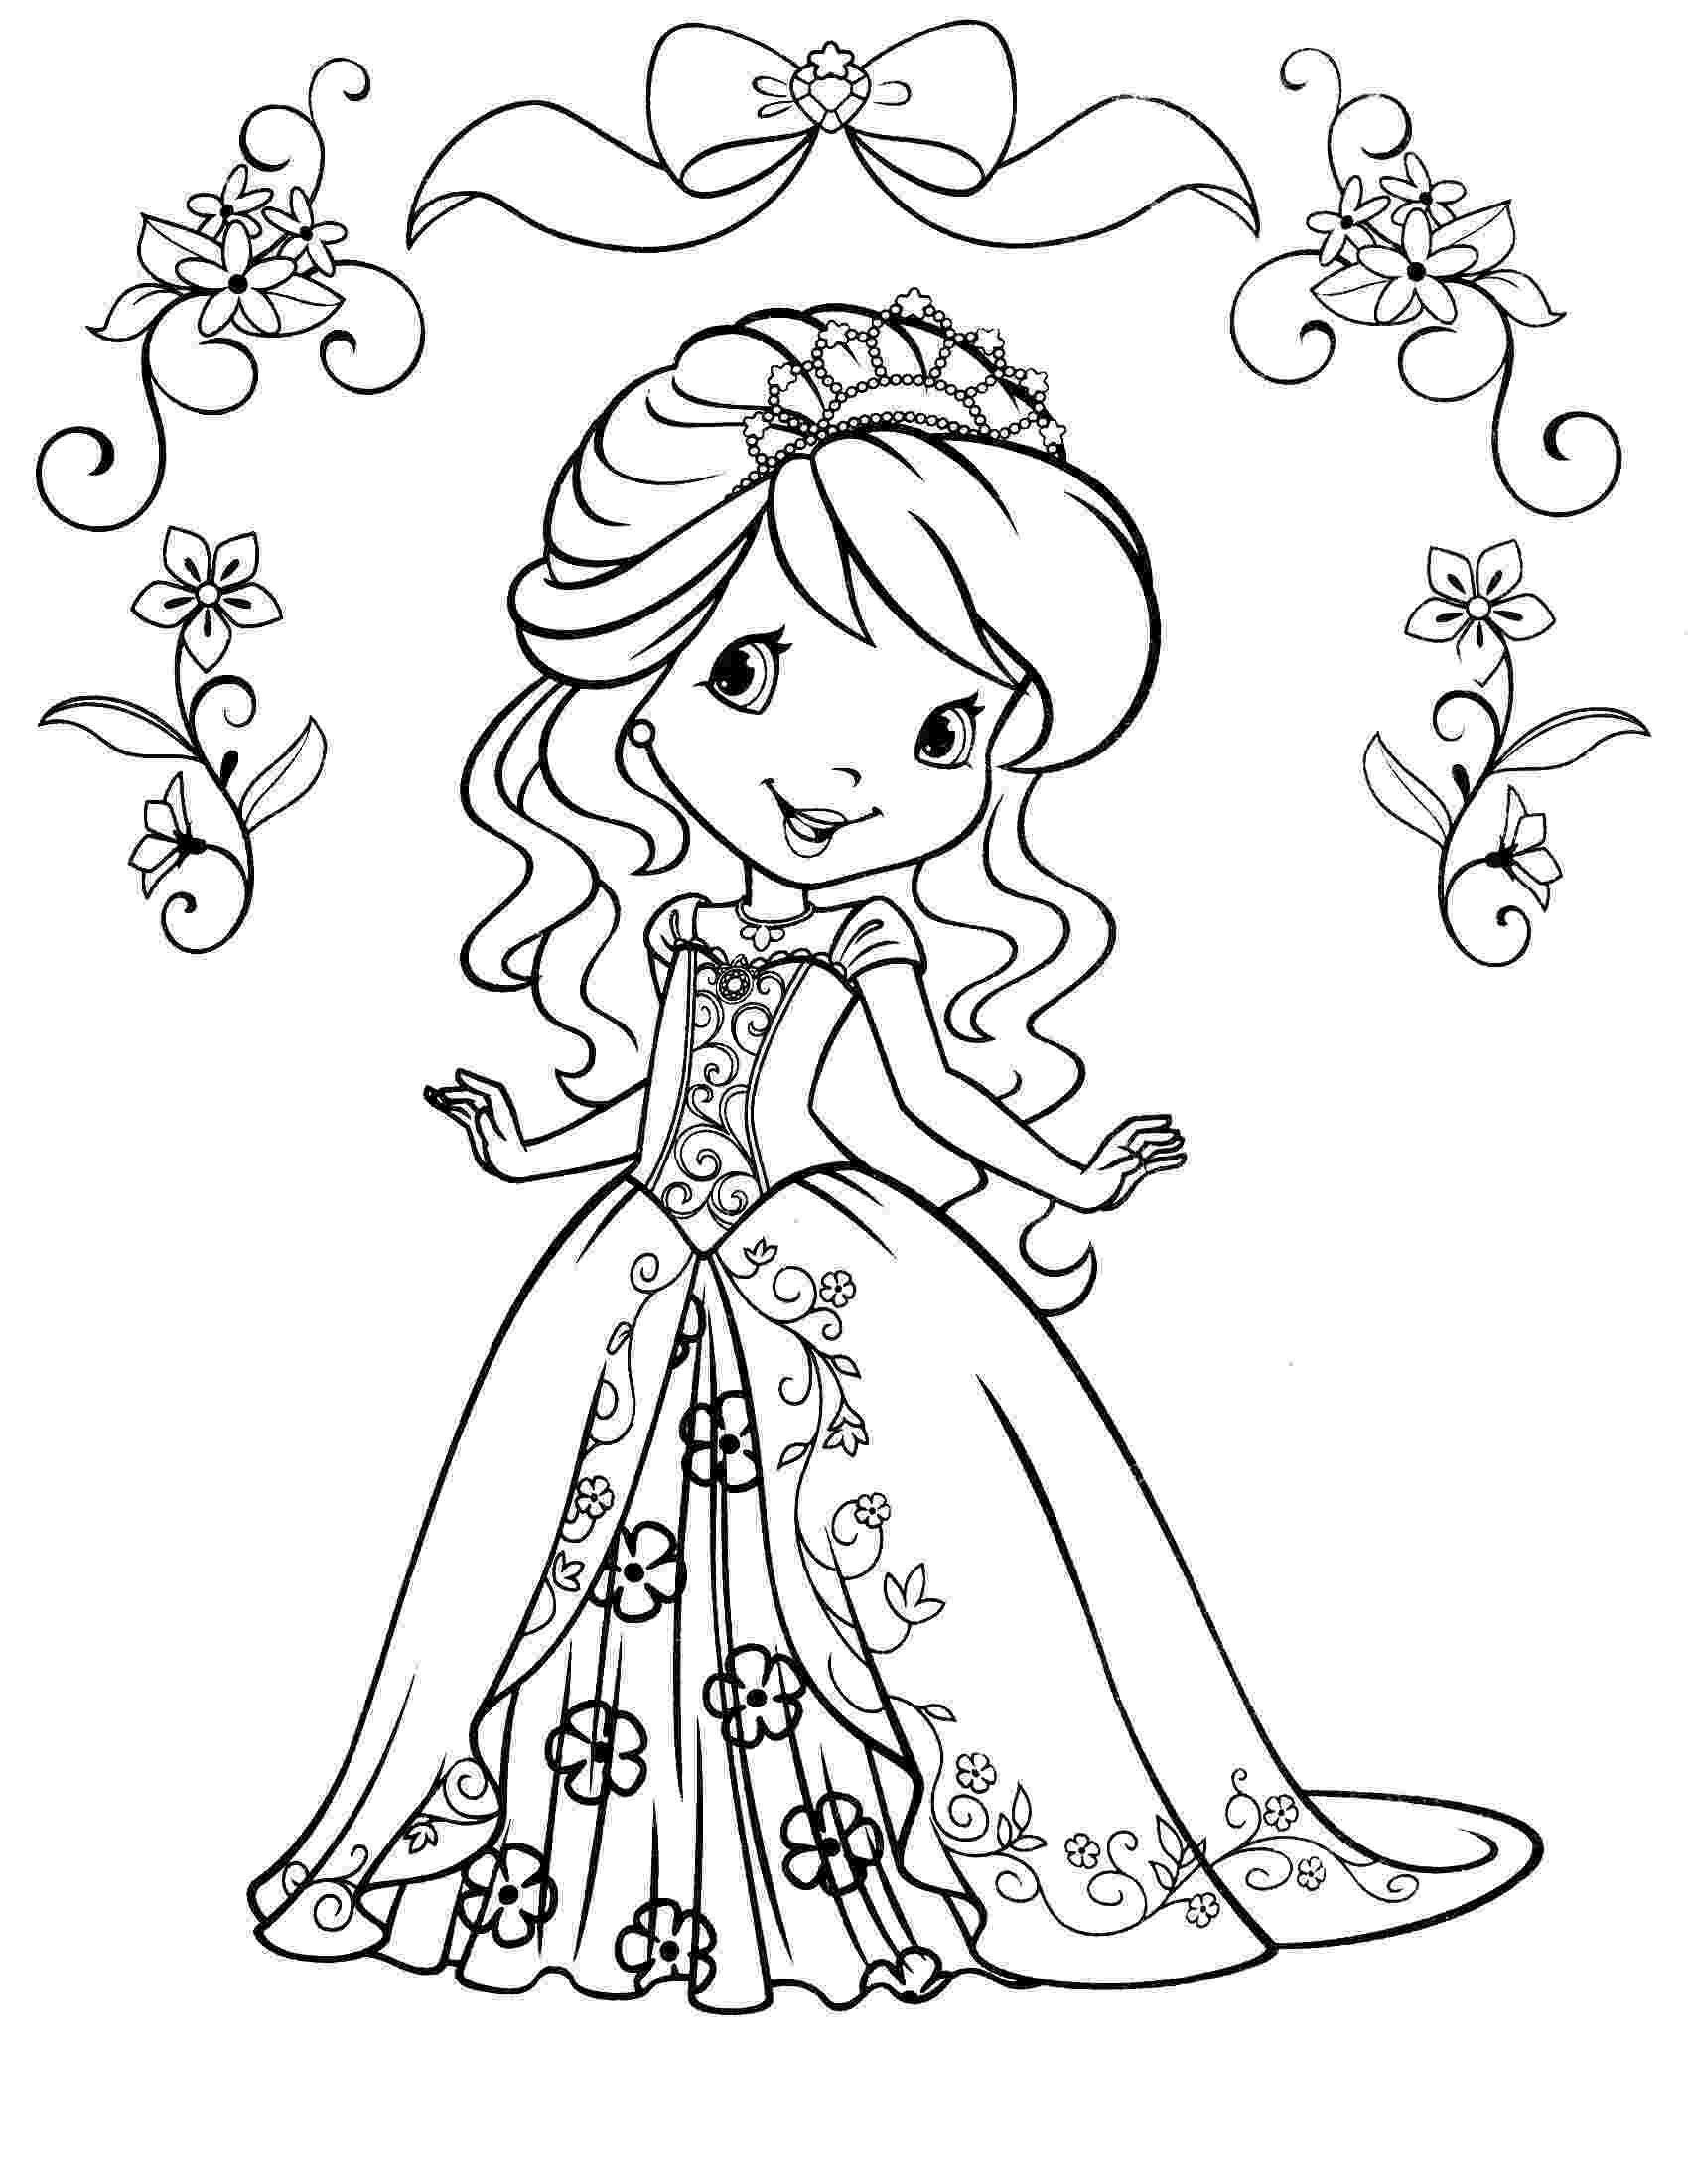 strawberry shortcake princess coloring pages 131 best images about color strawberry shortcake on pages coloring princess strawberry shortcake